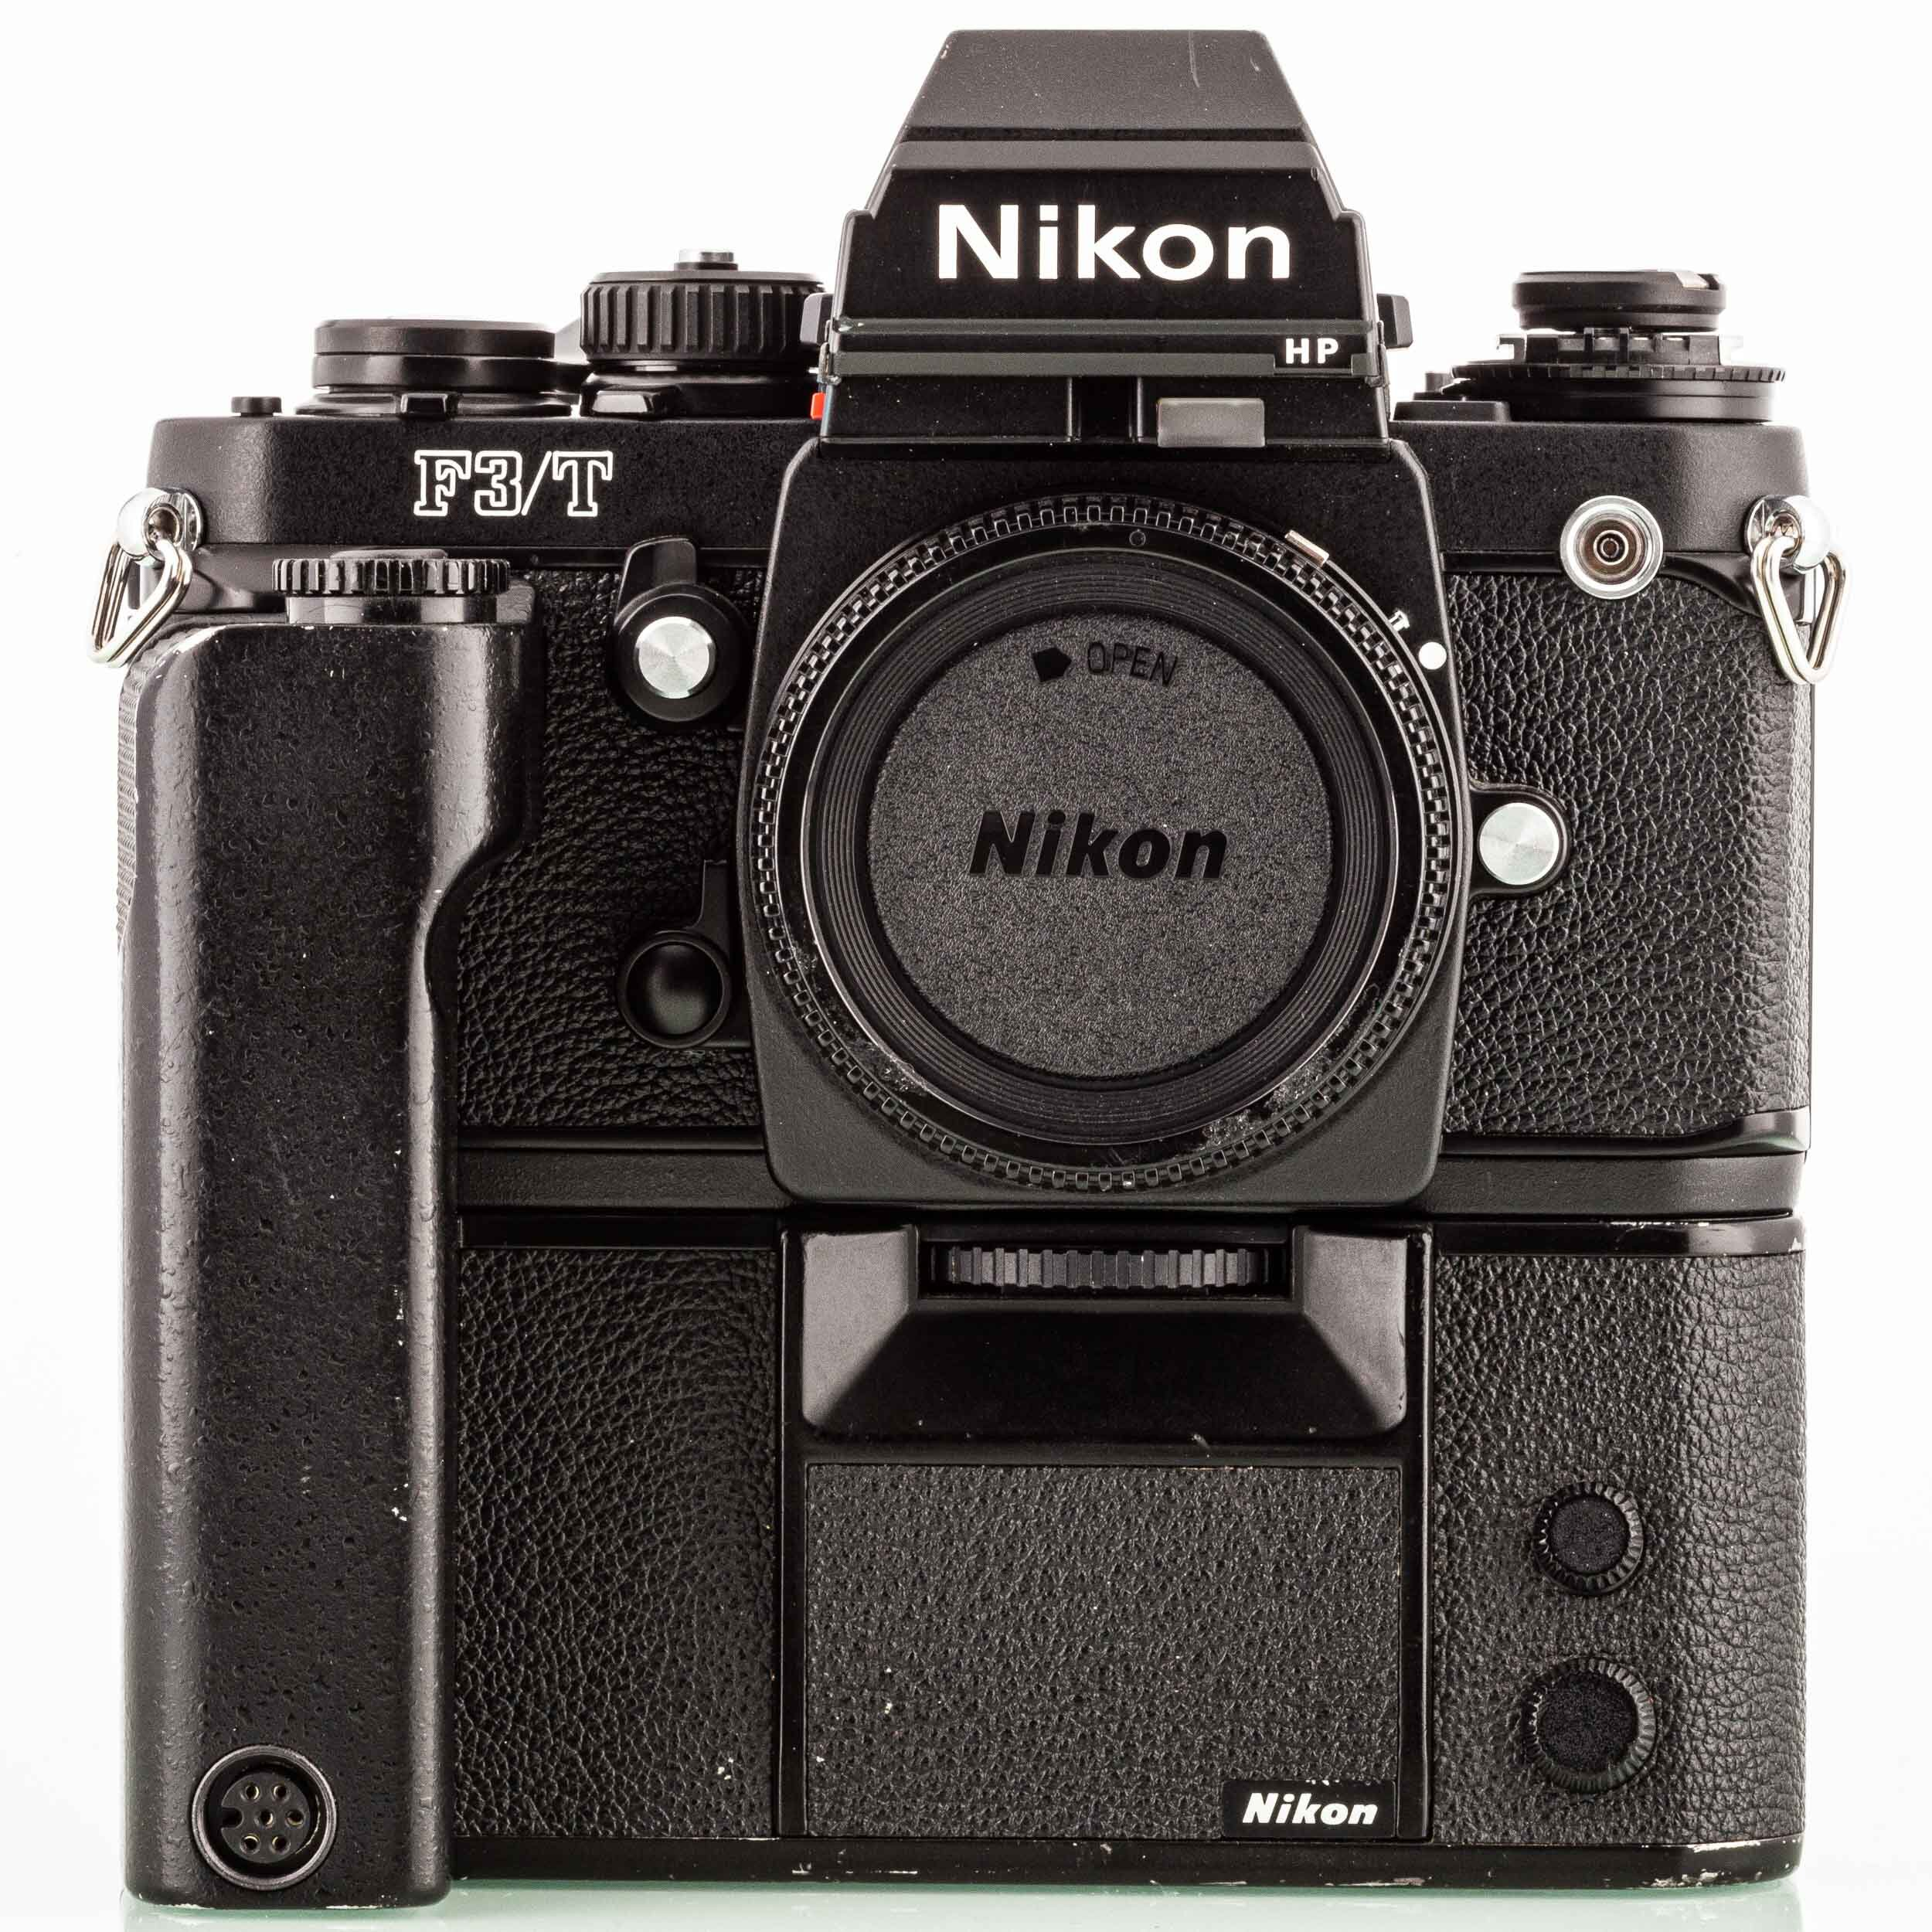 Nikon F3T Body with MD4 and MF14